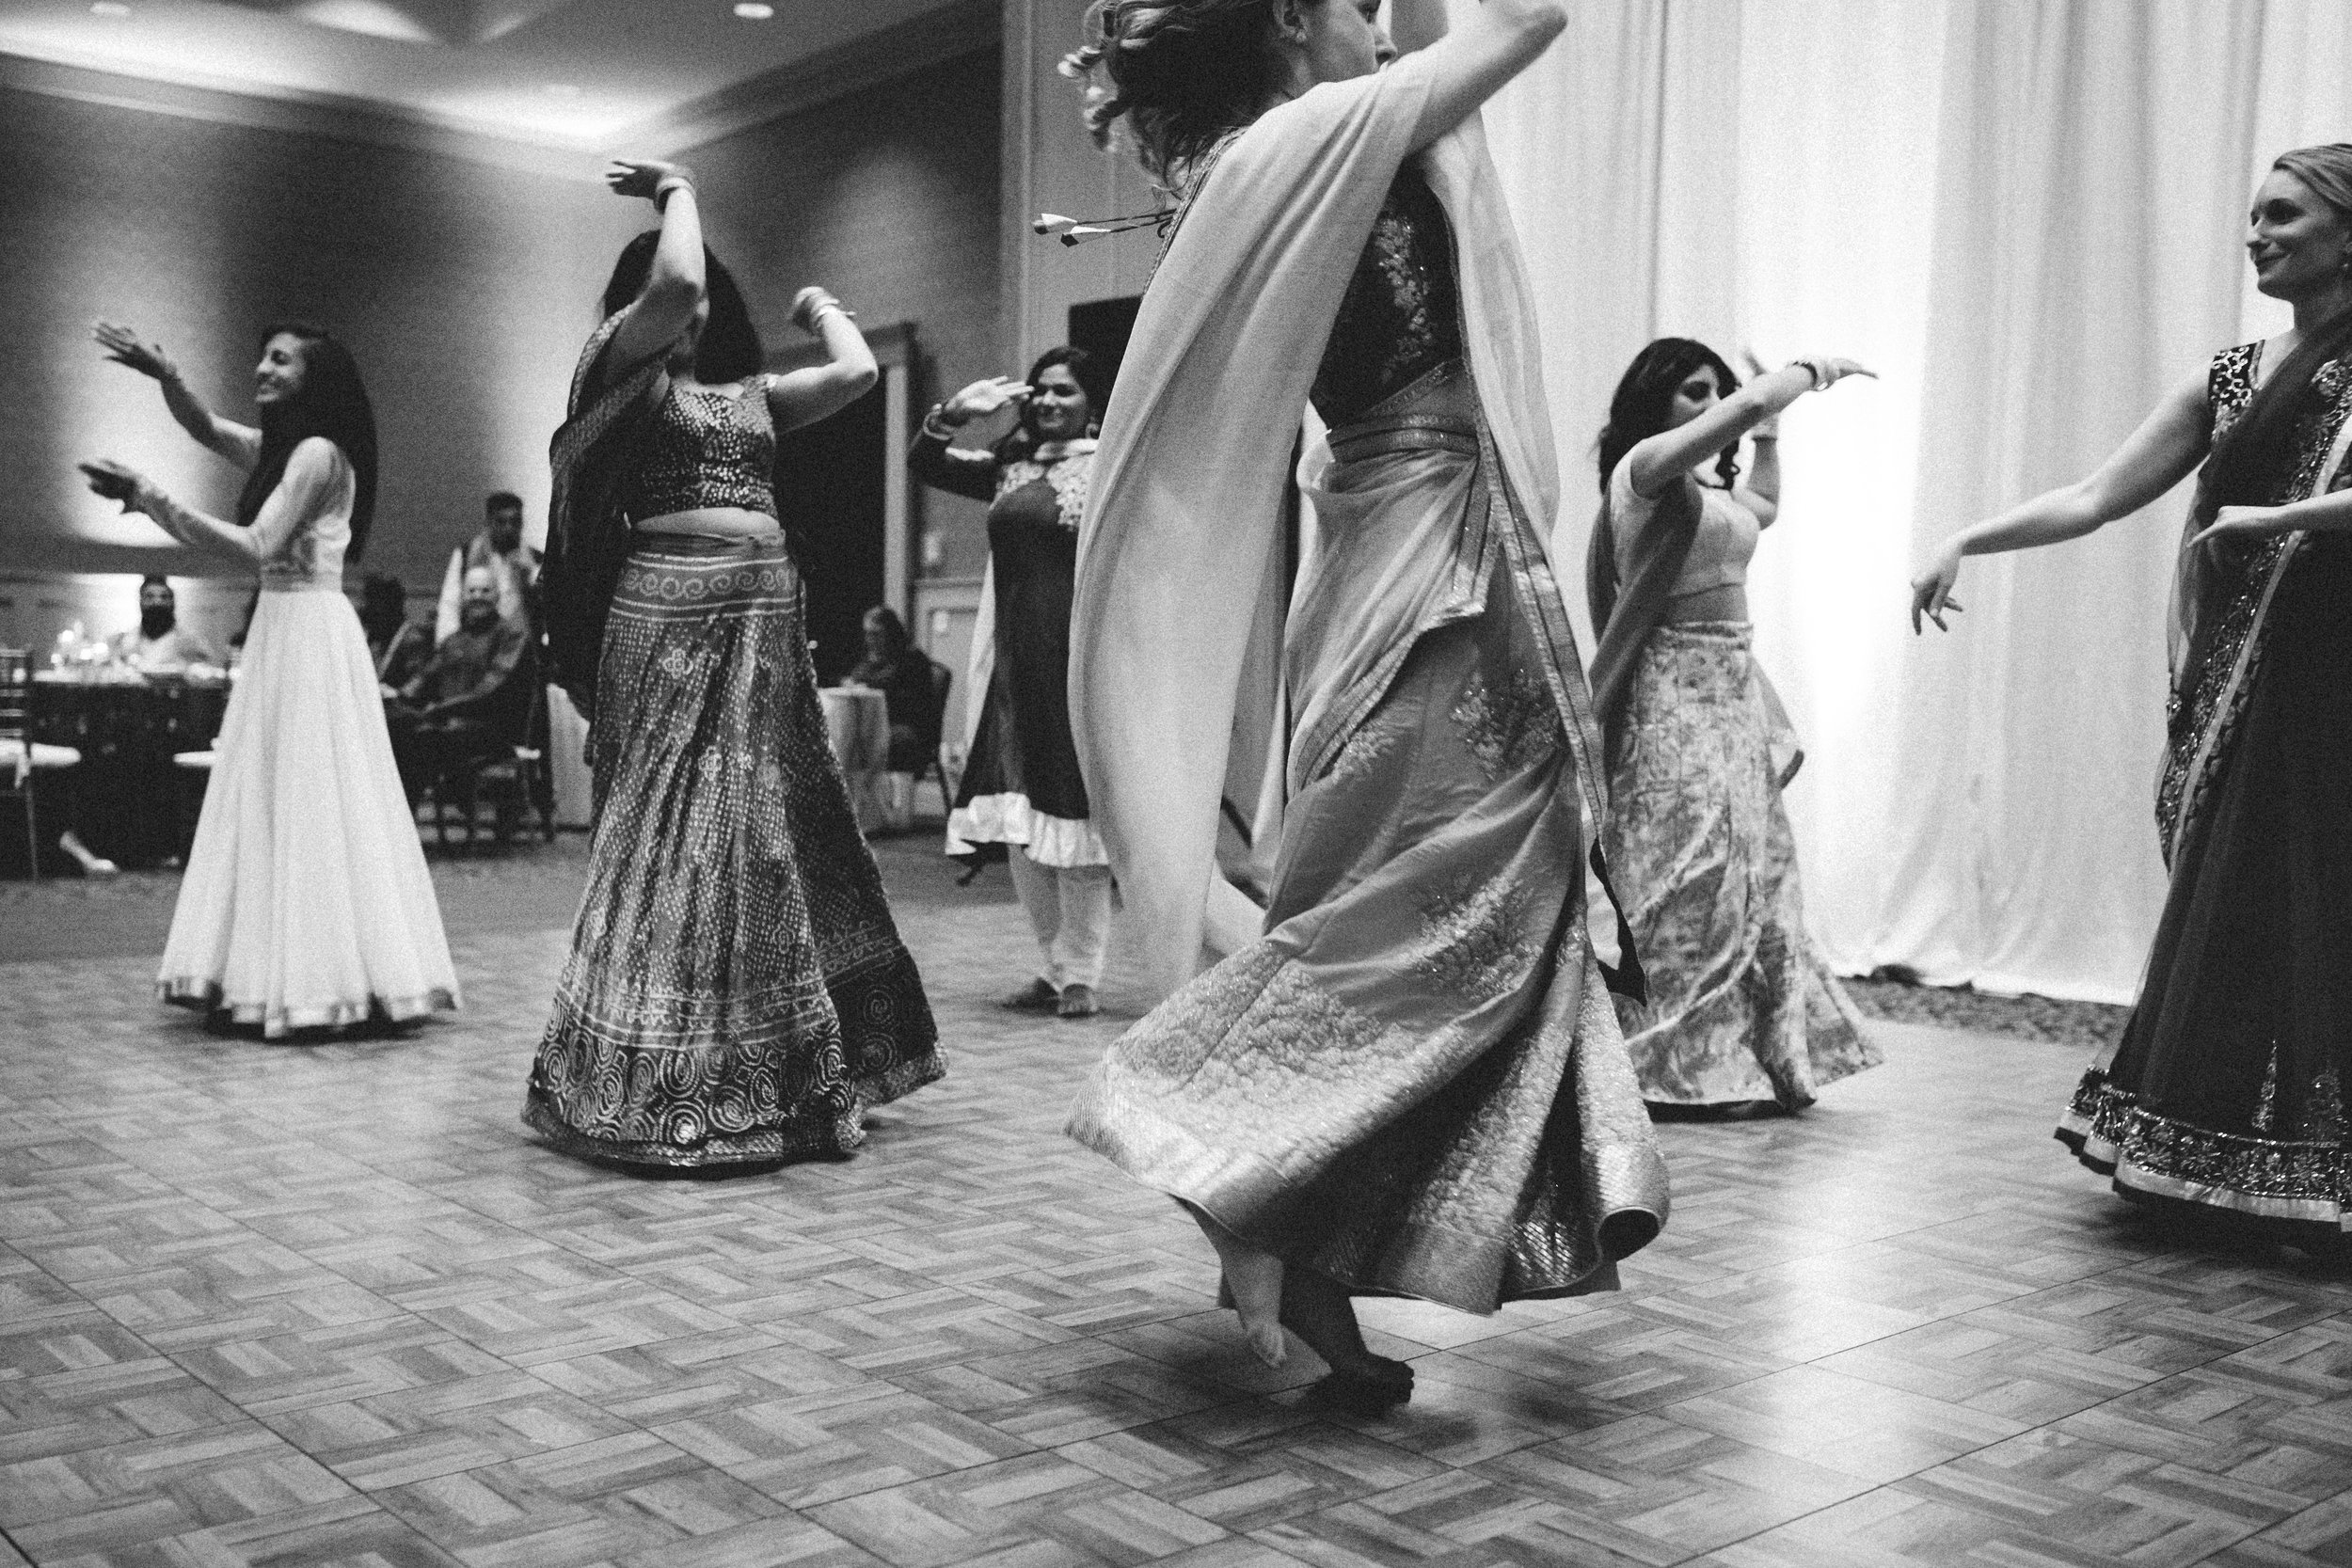 Aparna-Ankit-Patel-Shah-Detroit-Michigan-Shadow-Shine-Pictures-Photography-Indian-Mid-West